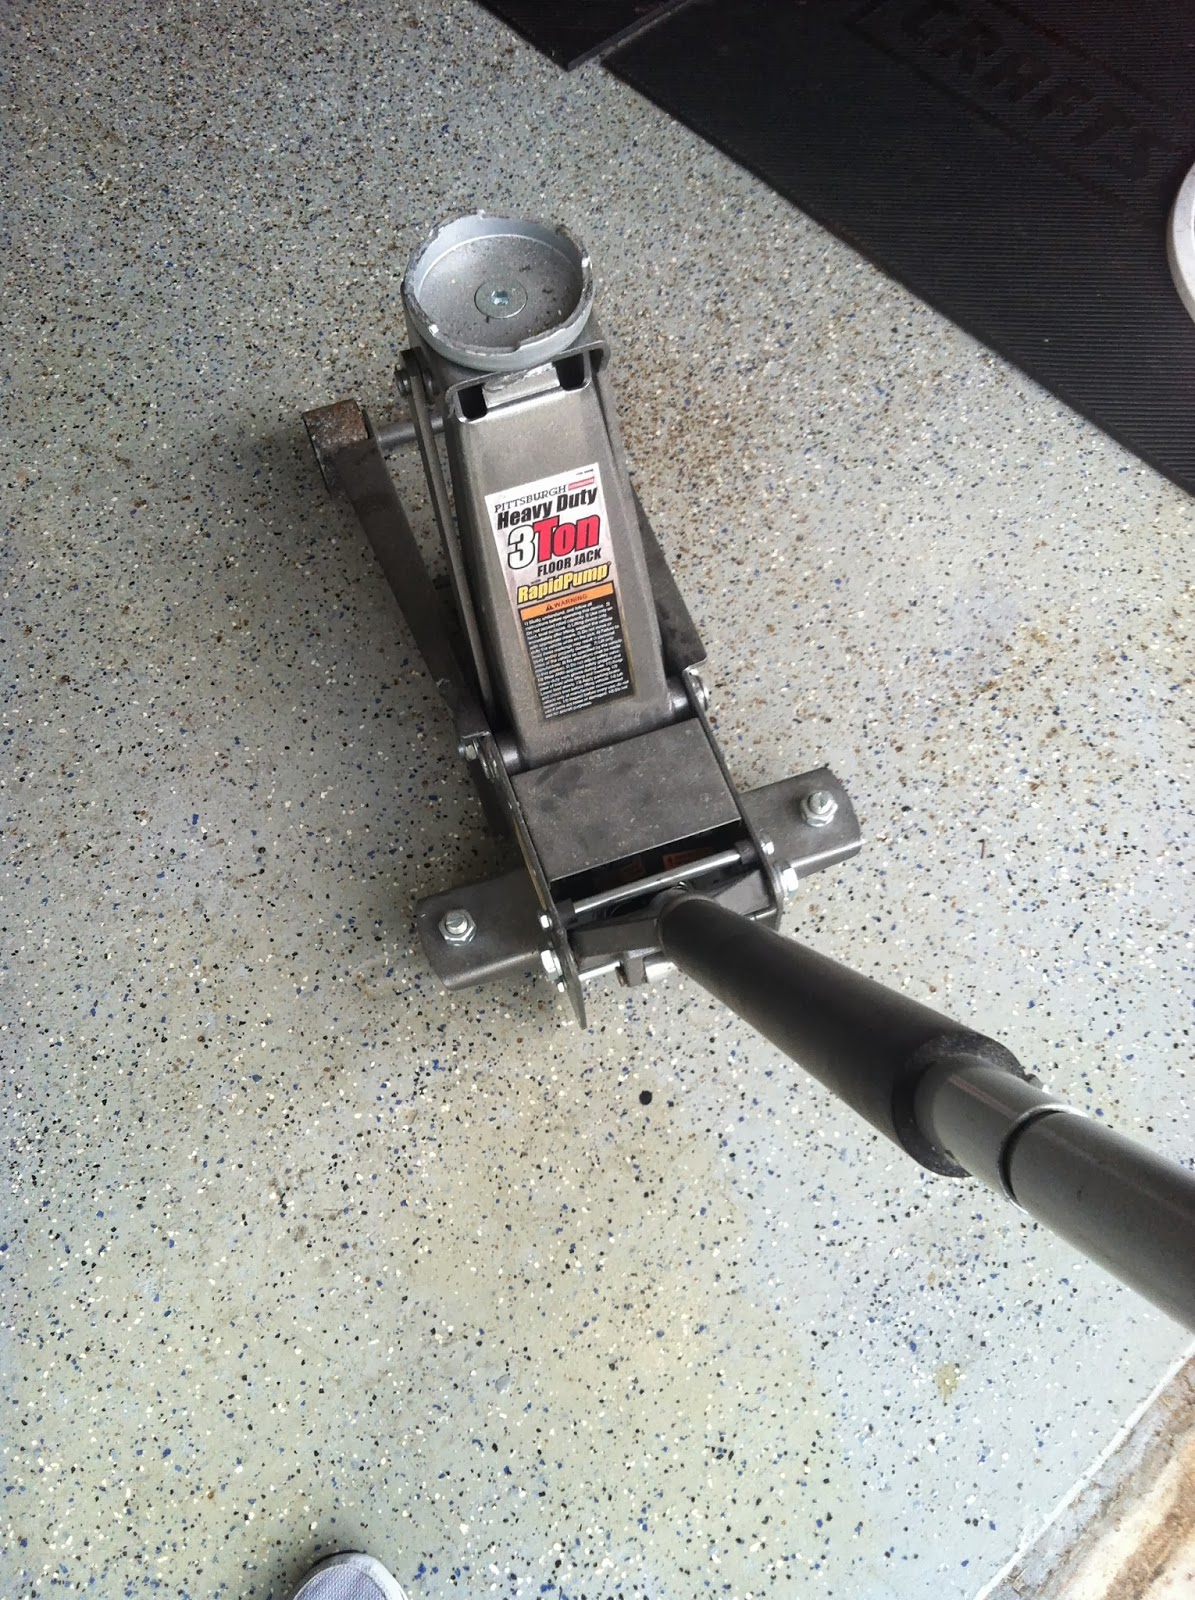 getting pump jach discussion quicker forums floor ton craftsman heavy feature up forum expedites rapid great to vehicle much net tundratalk image works jack duty general which toyota and the tundra service